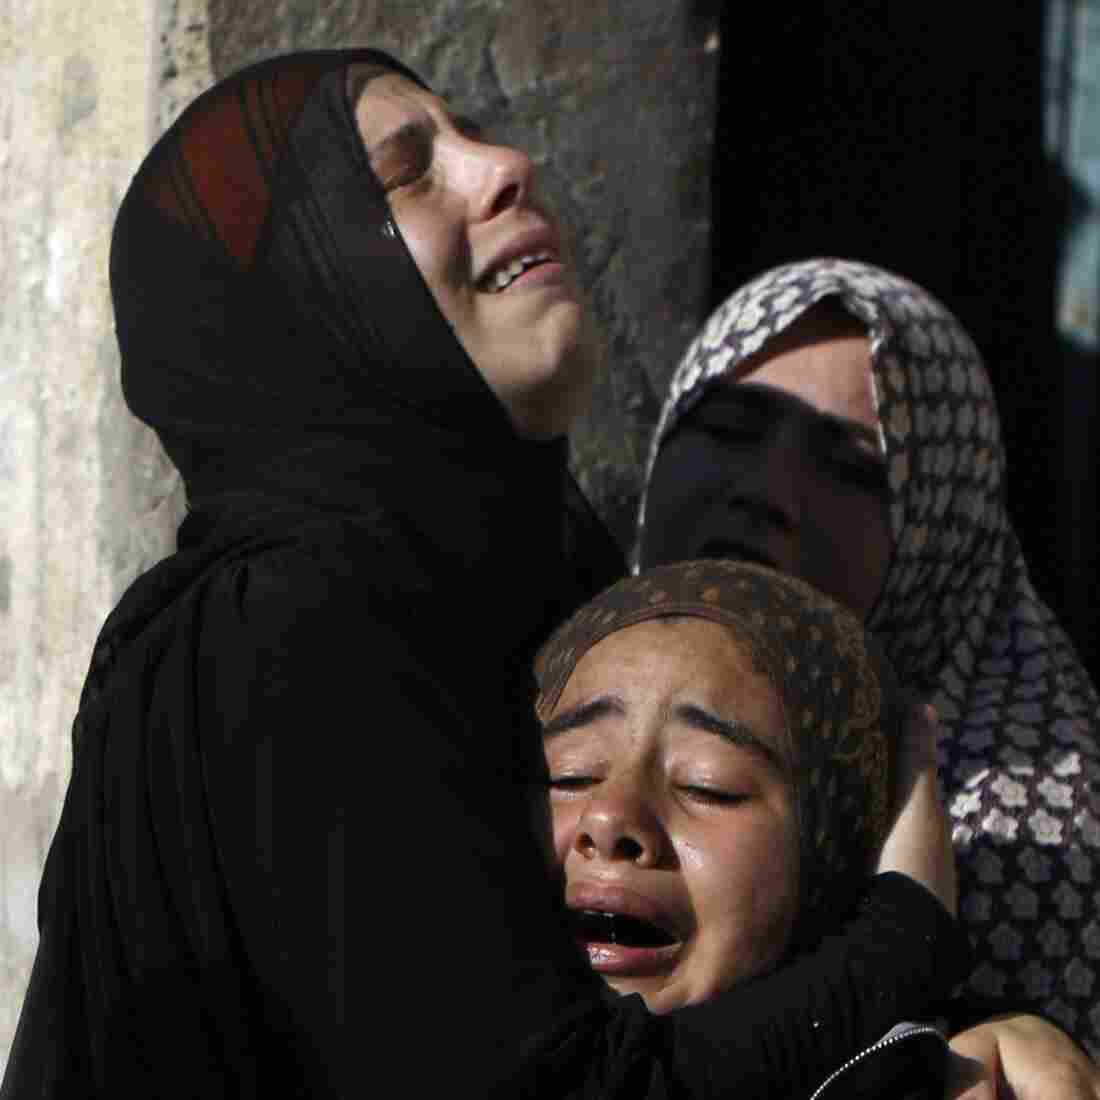 Palestinians weep at the funeral Wednesday for four boys, ages 9 to 12 and all cousins from the extended Bakr family. They were killed in an Israeli attack in Gaza City.